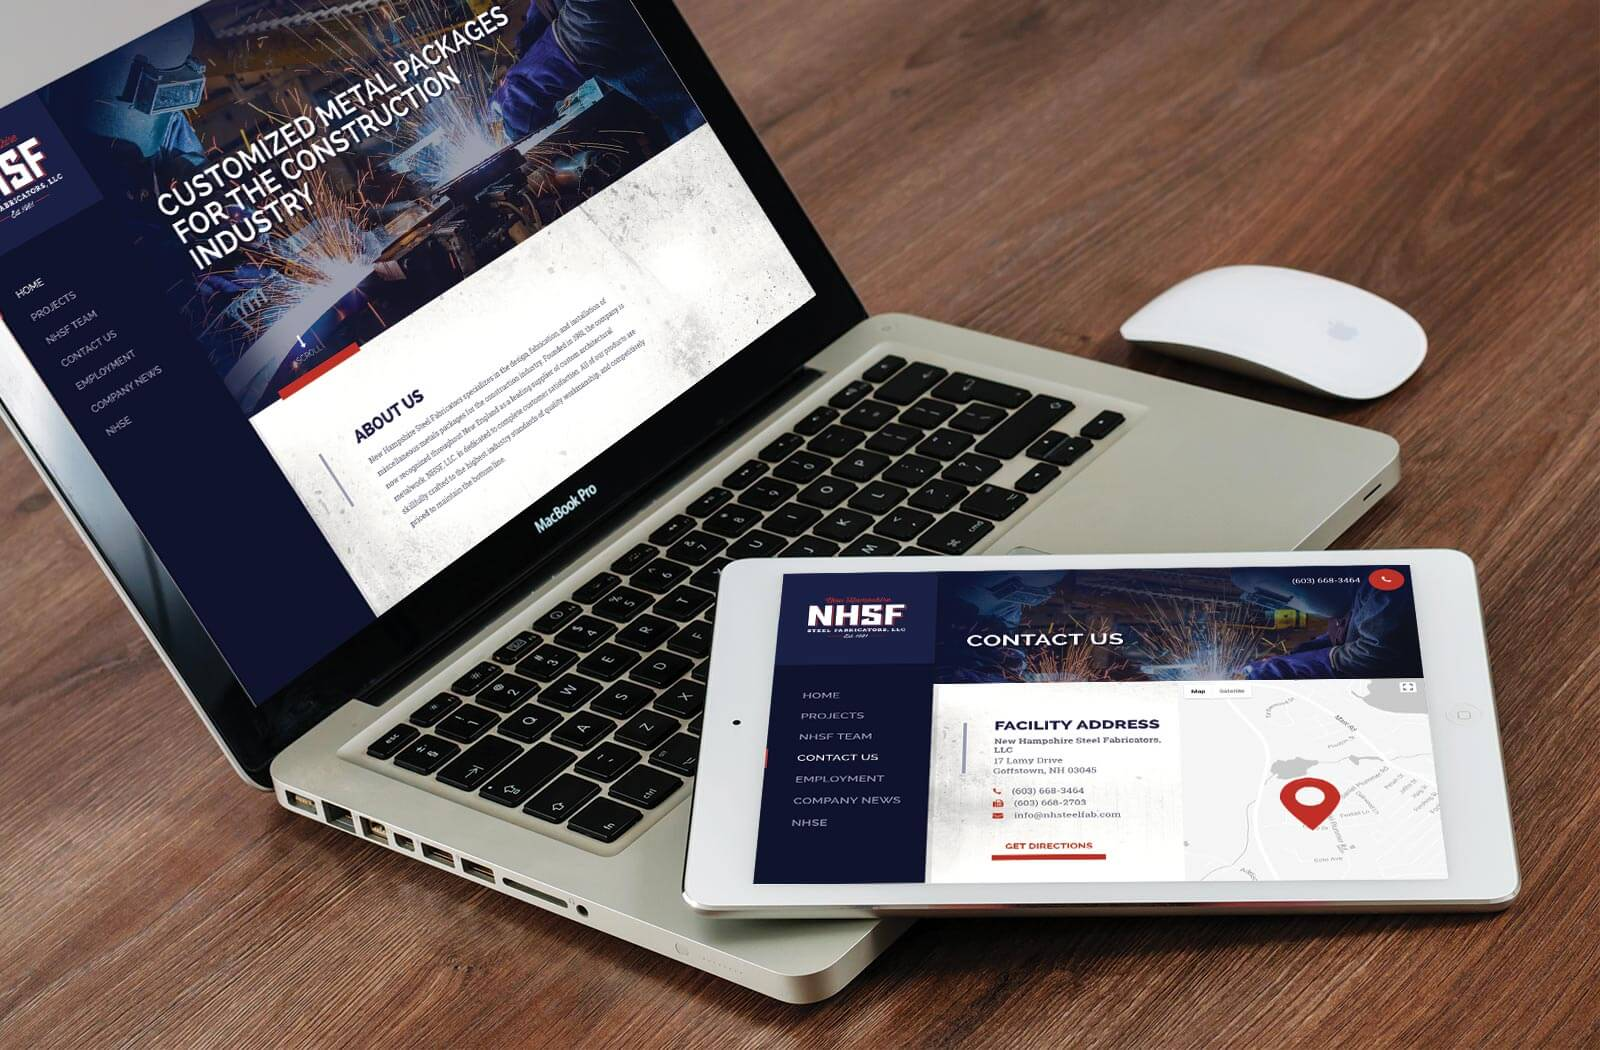 Responsive-Web-Design-Does-Your-Site-Have-These-3-Features